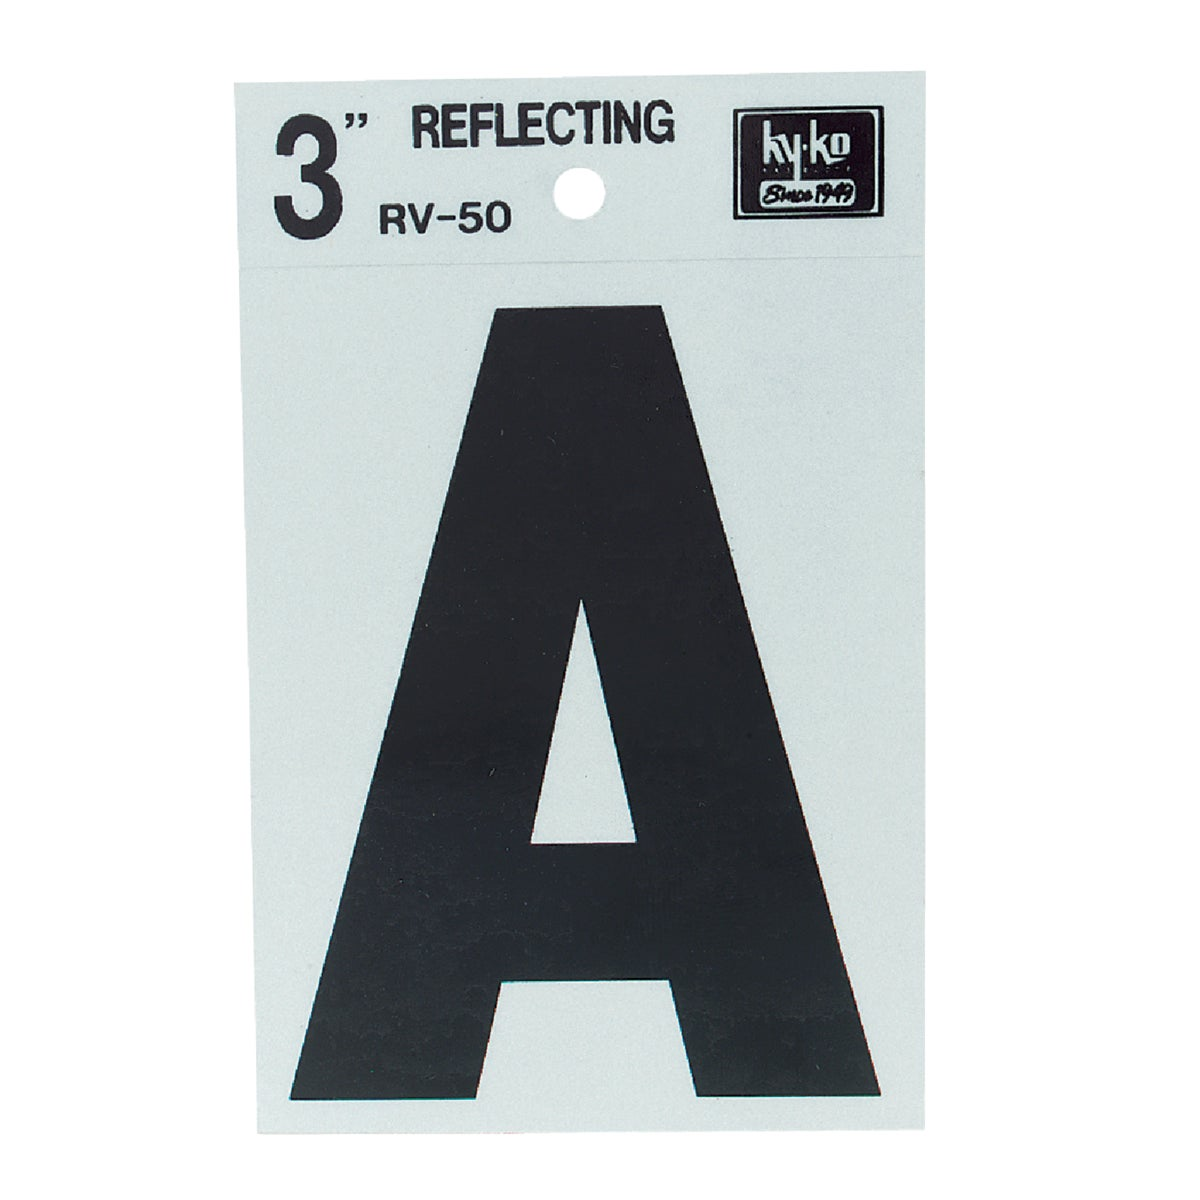 "3"" REFLECT LETTER A - RV-50A by Hy Ko Prods Co"